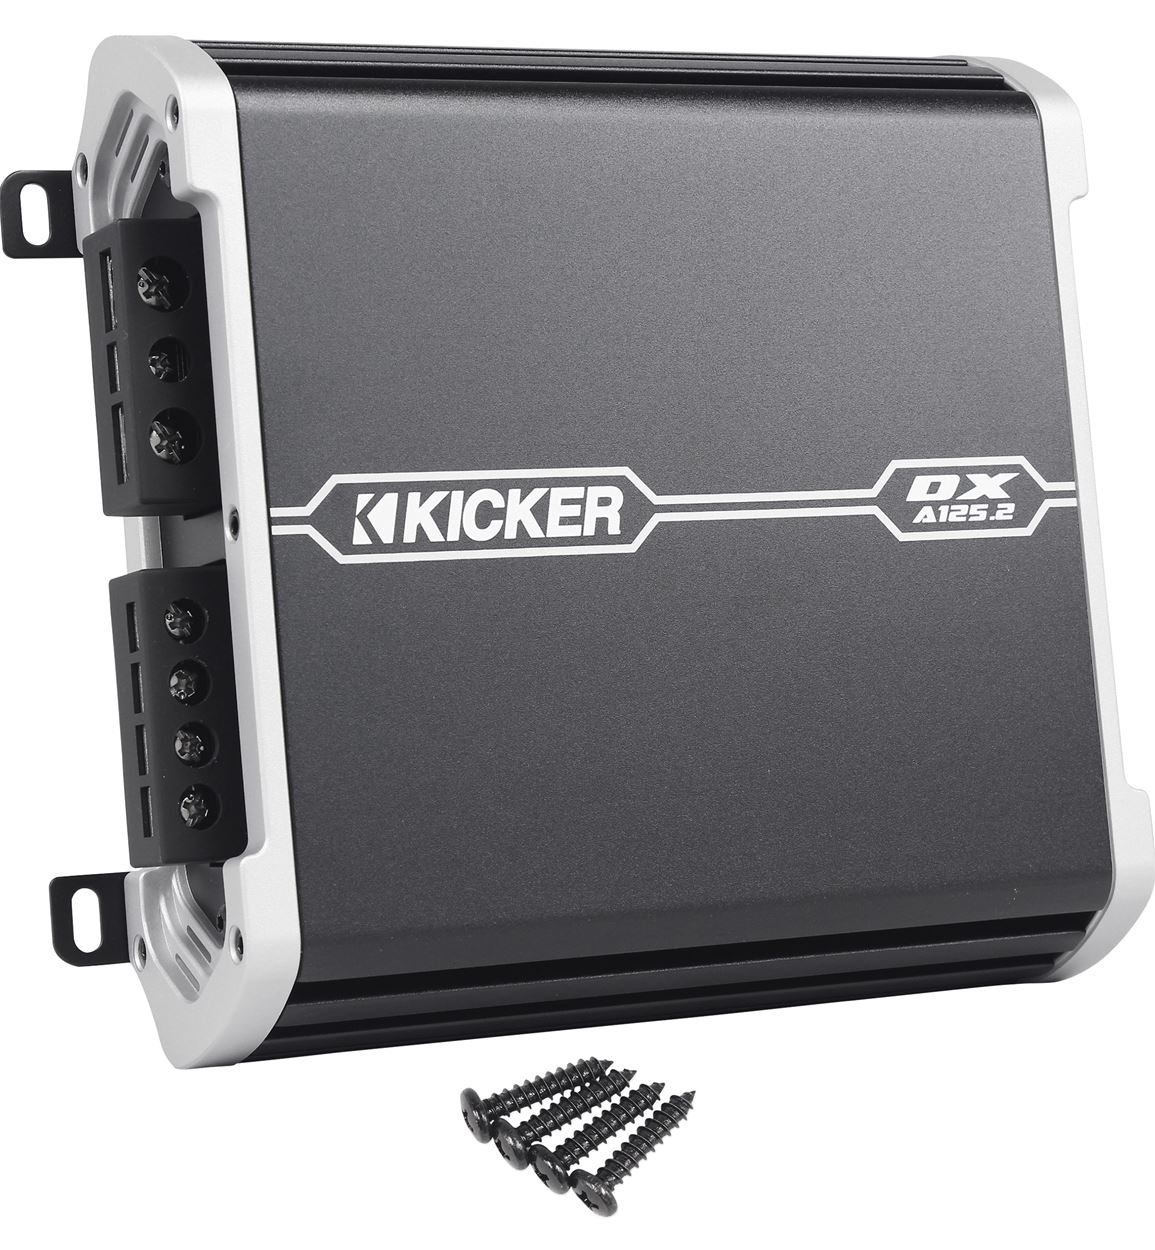 Amazon.com: Kicker DXA125.2 (41DXA1252) 125 Watt RMS 2 Channel Car Audio Amplifier + Amp Kit: Cell Phones & Accessories